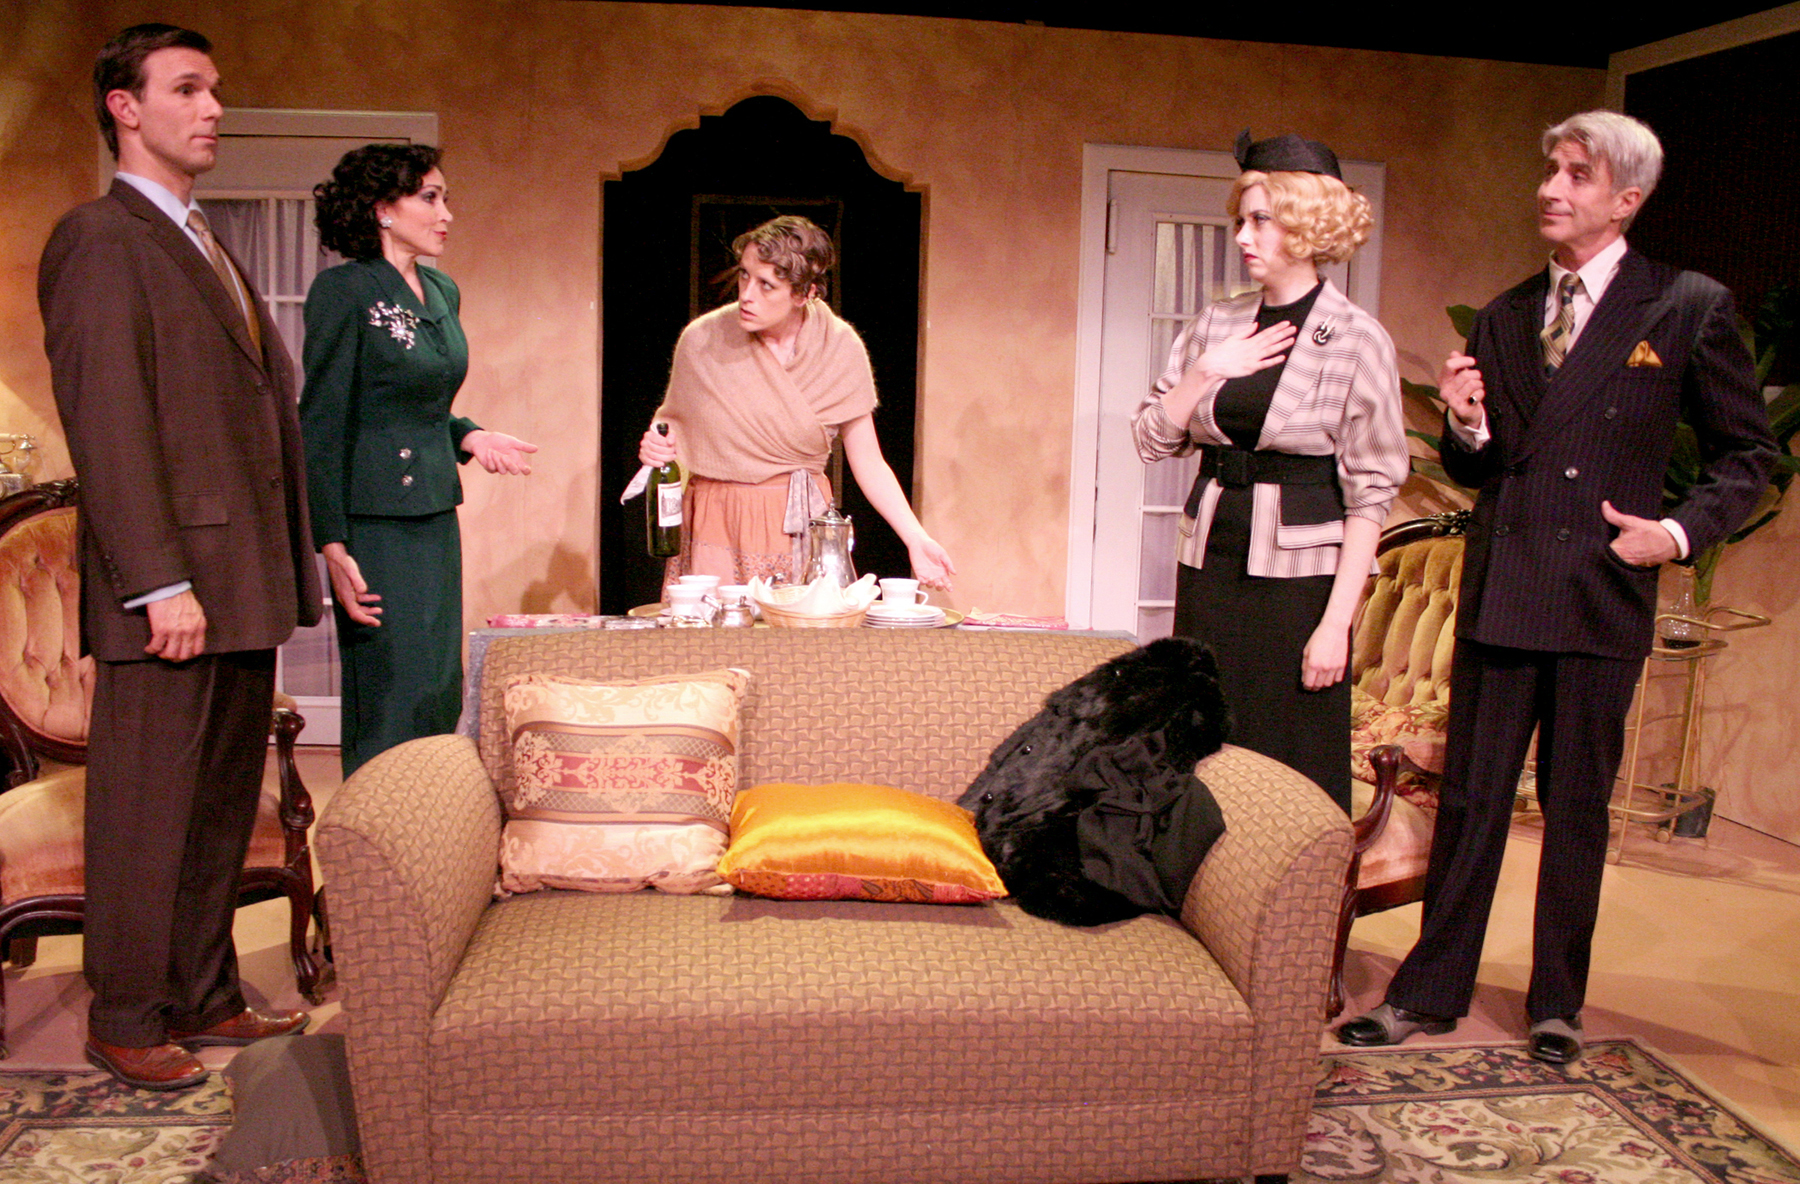 L to R: Jeff Witzke, Stasha Surdyke, Angie Light, Annie Abrams, and Lenny Von Dohlen in PRIVATE LIVES. 